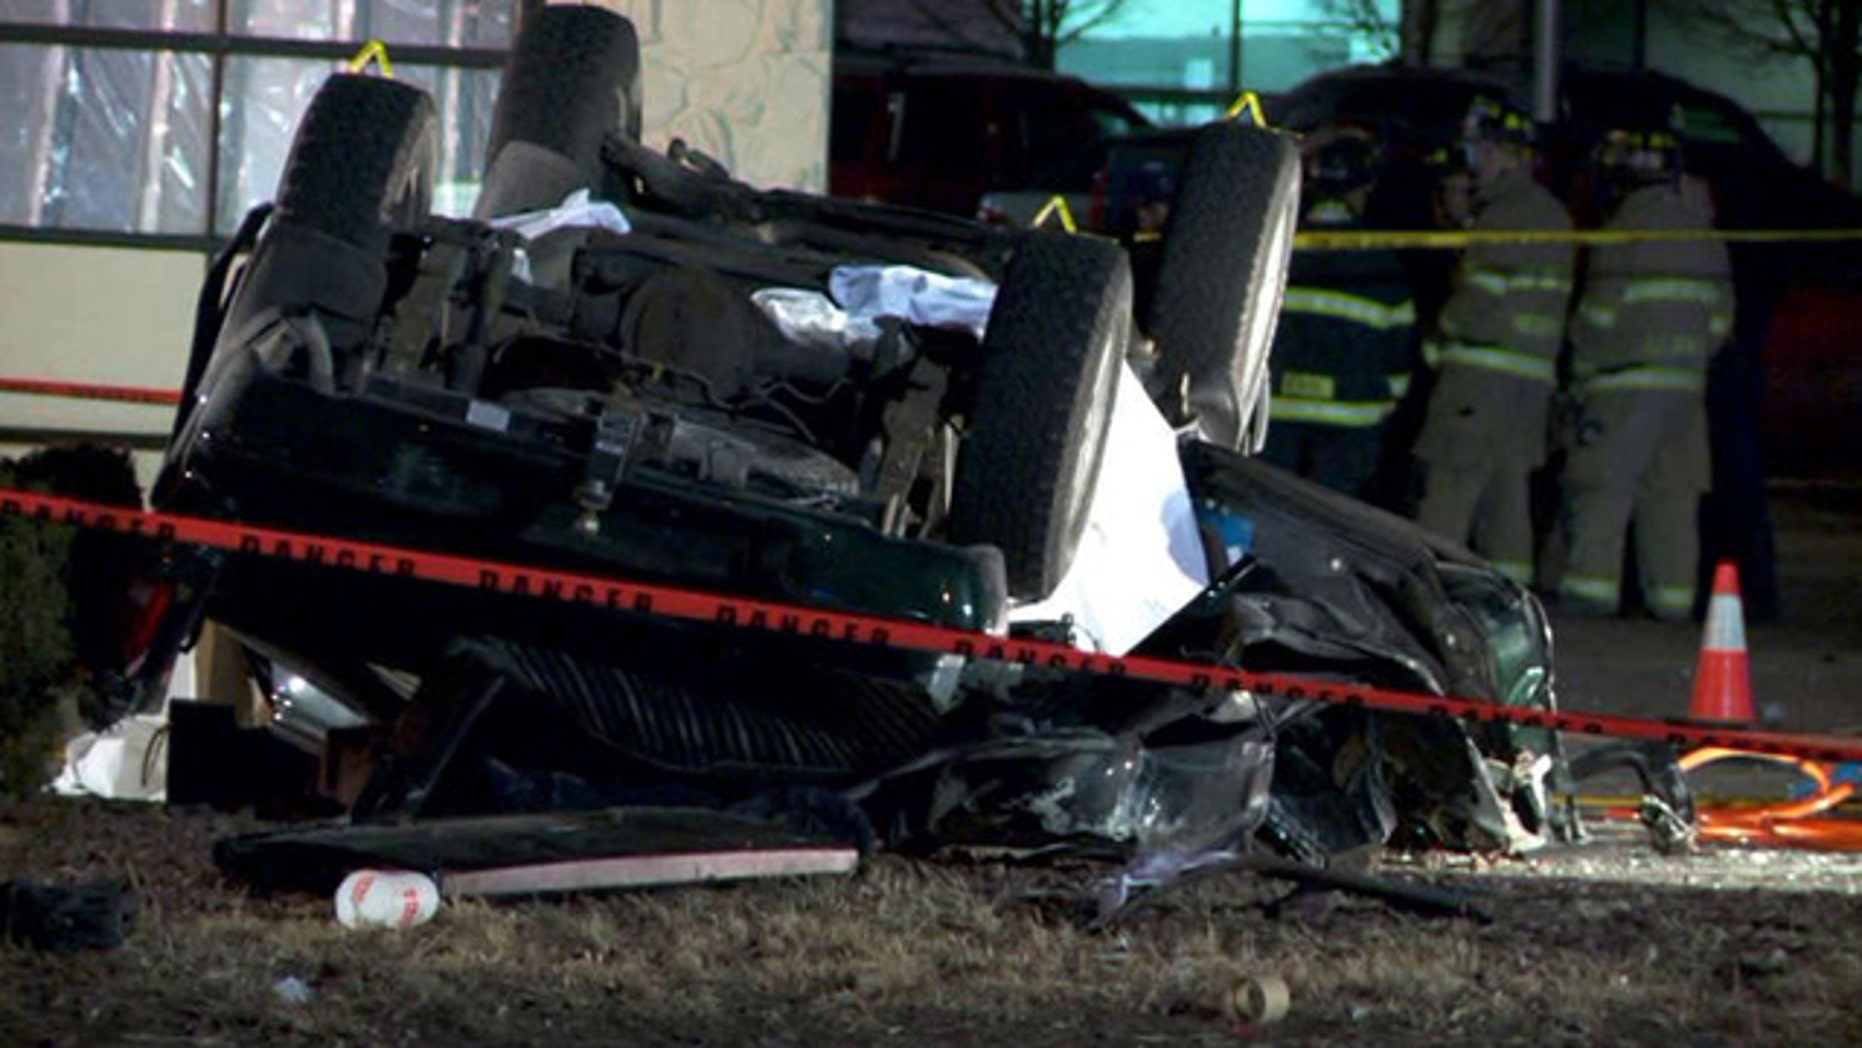 A police spokesman said investigators are trying to determine what led to the crash. Names of the dead and injured were not immediately released. (MyFoxColorado.com)